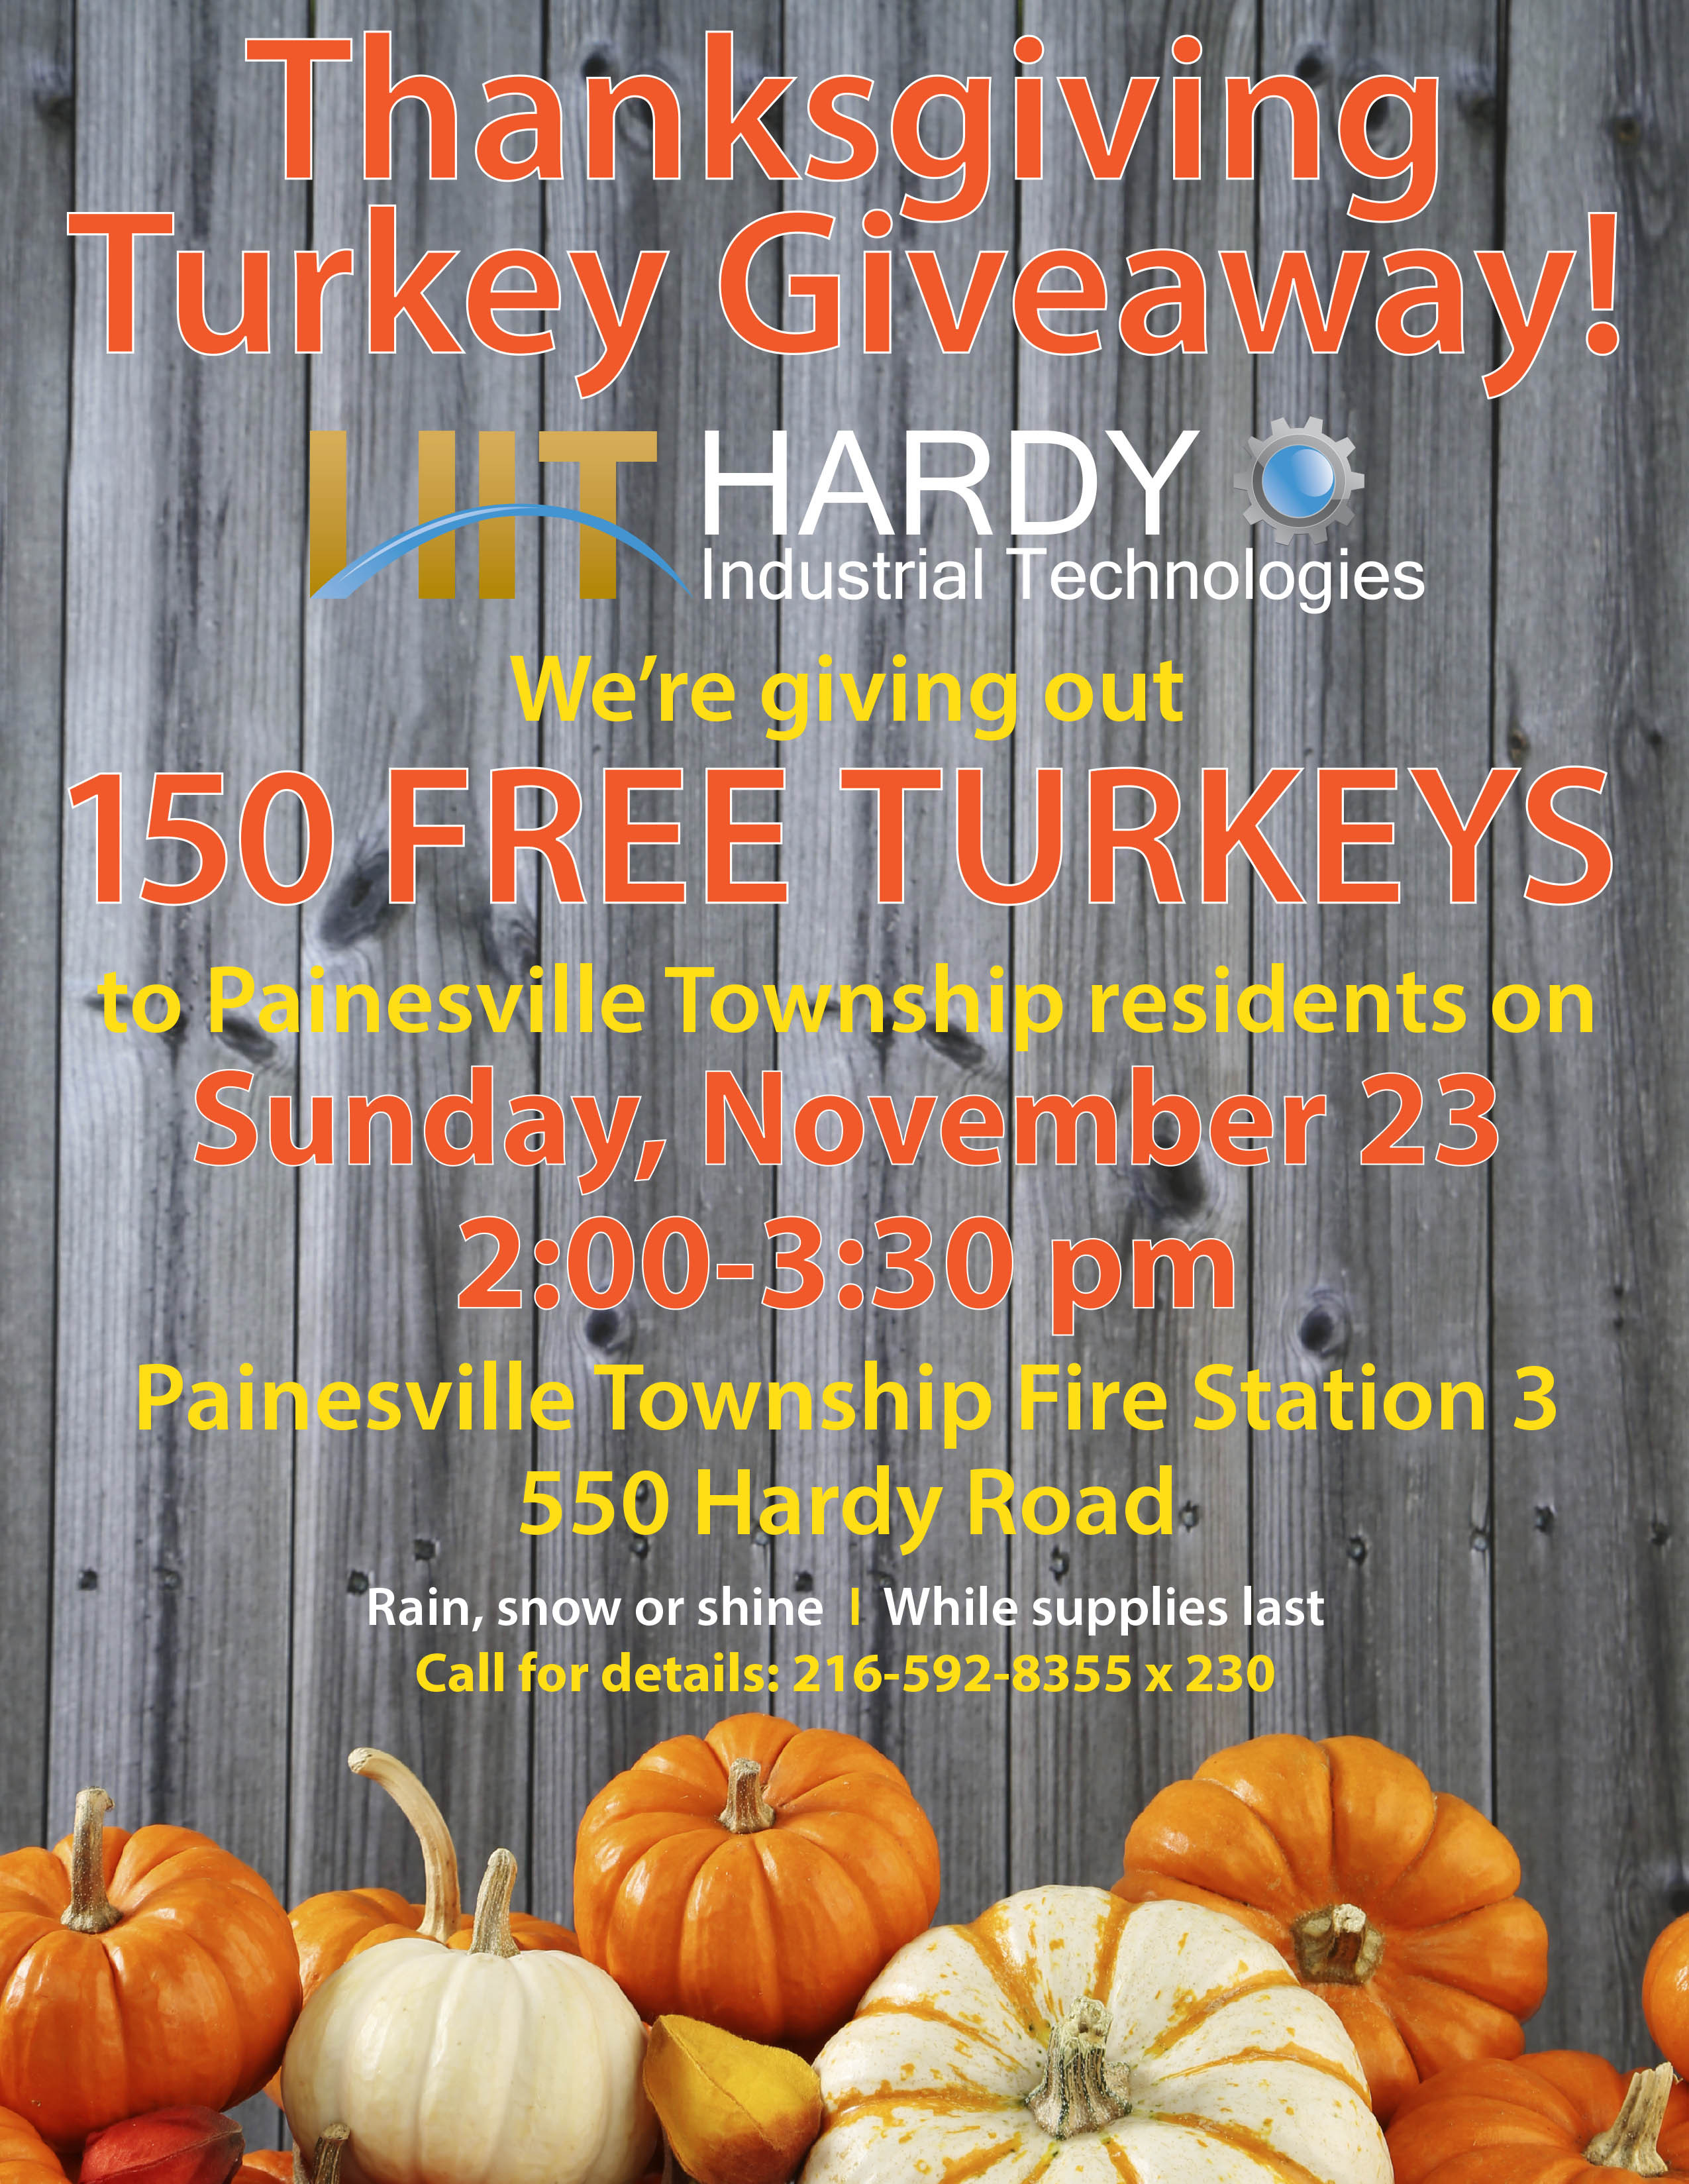 Thanksgiving Turkey Giveaway  Annual Thanksgiving Turkey Giveaway in Painesville